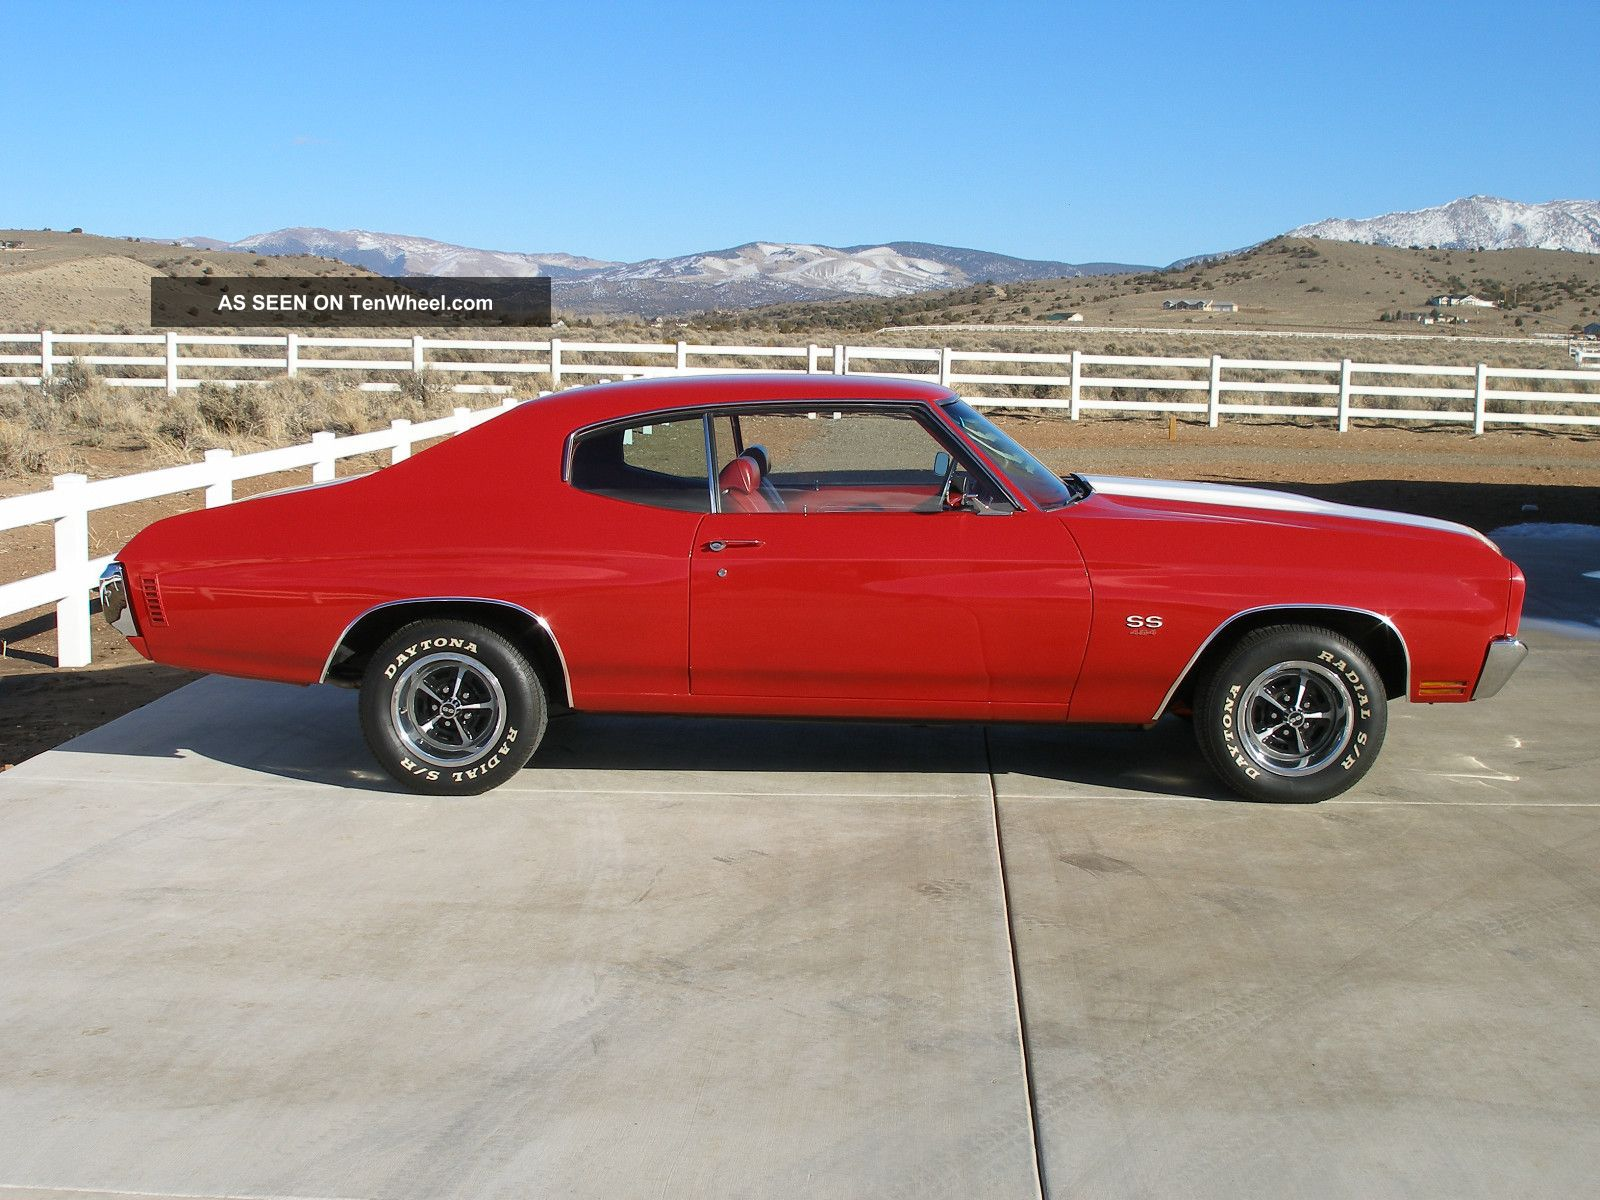 1970 chevrolet chevelle ss 454 ls6 tribute chevelle photo 2. Cars Review. Best American Auto & Cars Review